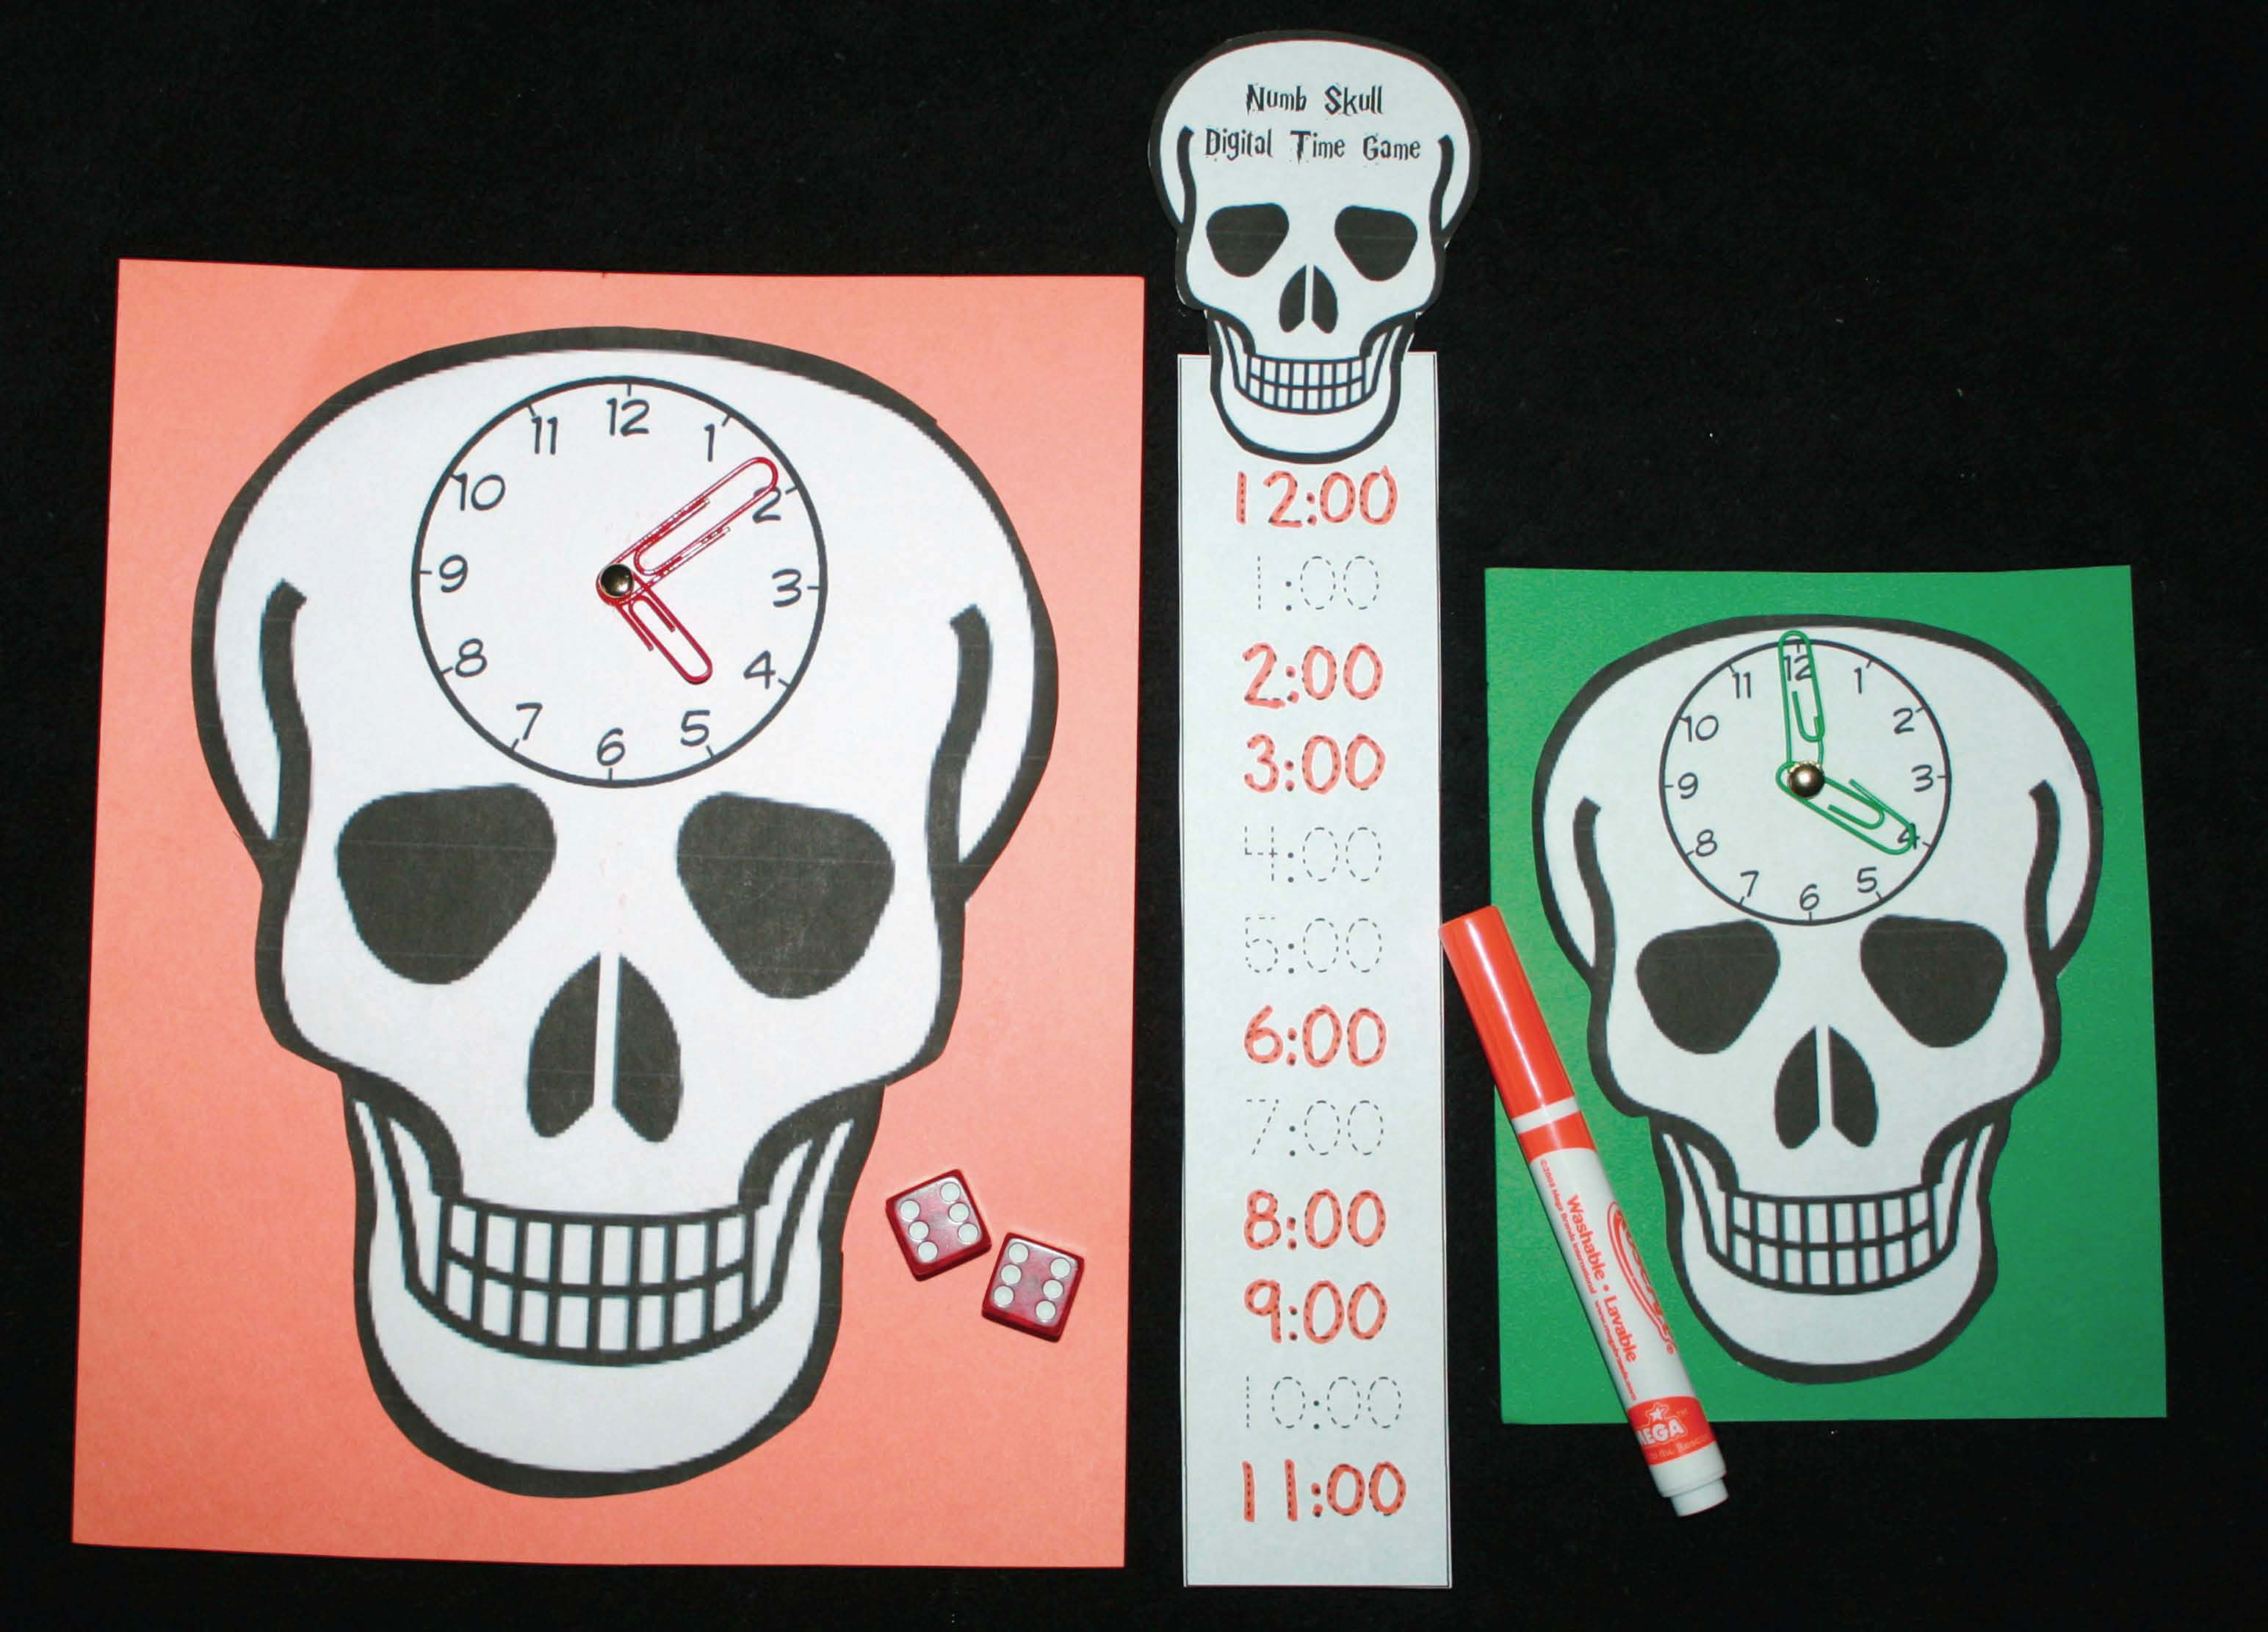 numb skull activities, numb skulls, skeleton activities, math centers for october, skeleton number cards, skull activities, free number cards from 0-120, common core skeletons, common core pirates, pirate activities, pirate games, pirate math activities, halloween games, halloween centers, halloween activities, bone activities, counting backwards, greater and less than activities, addition and subtraction for october, addition and subtraction activities for halloween, addition and subtraction activities for october, skeleton math, skeleton puzzles, skeleton games, common core skeletons, common core pirates,